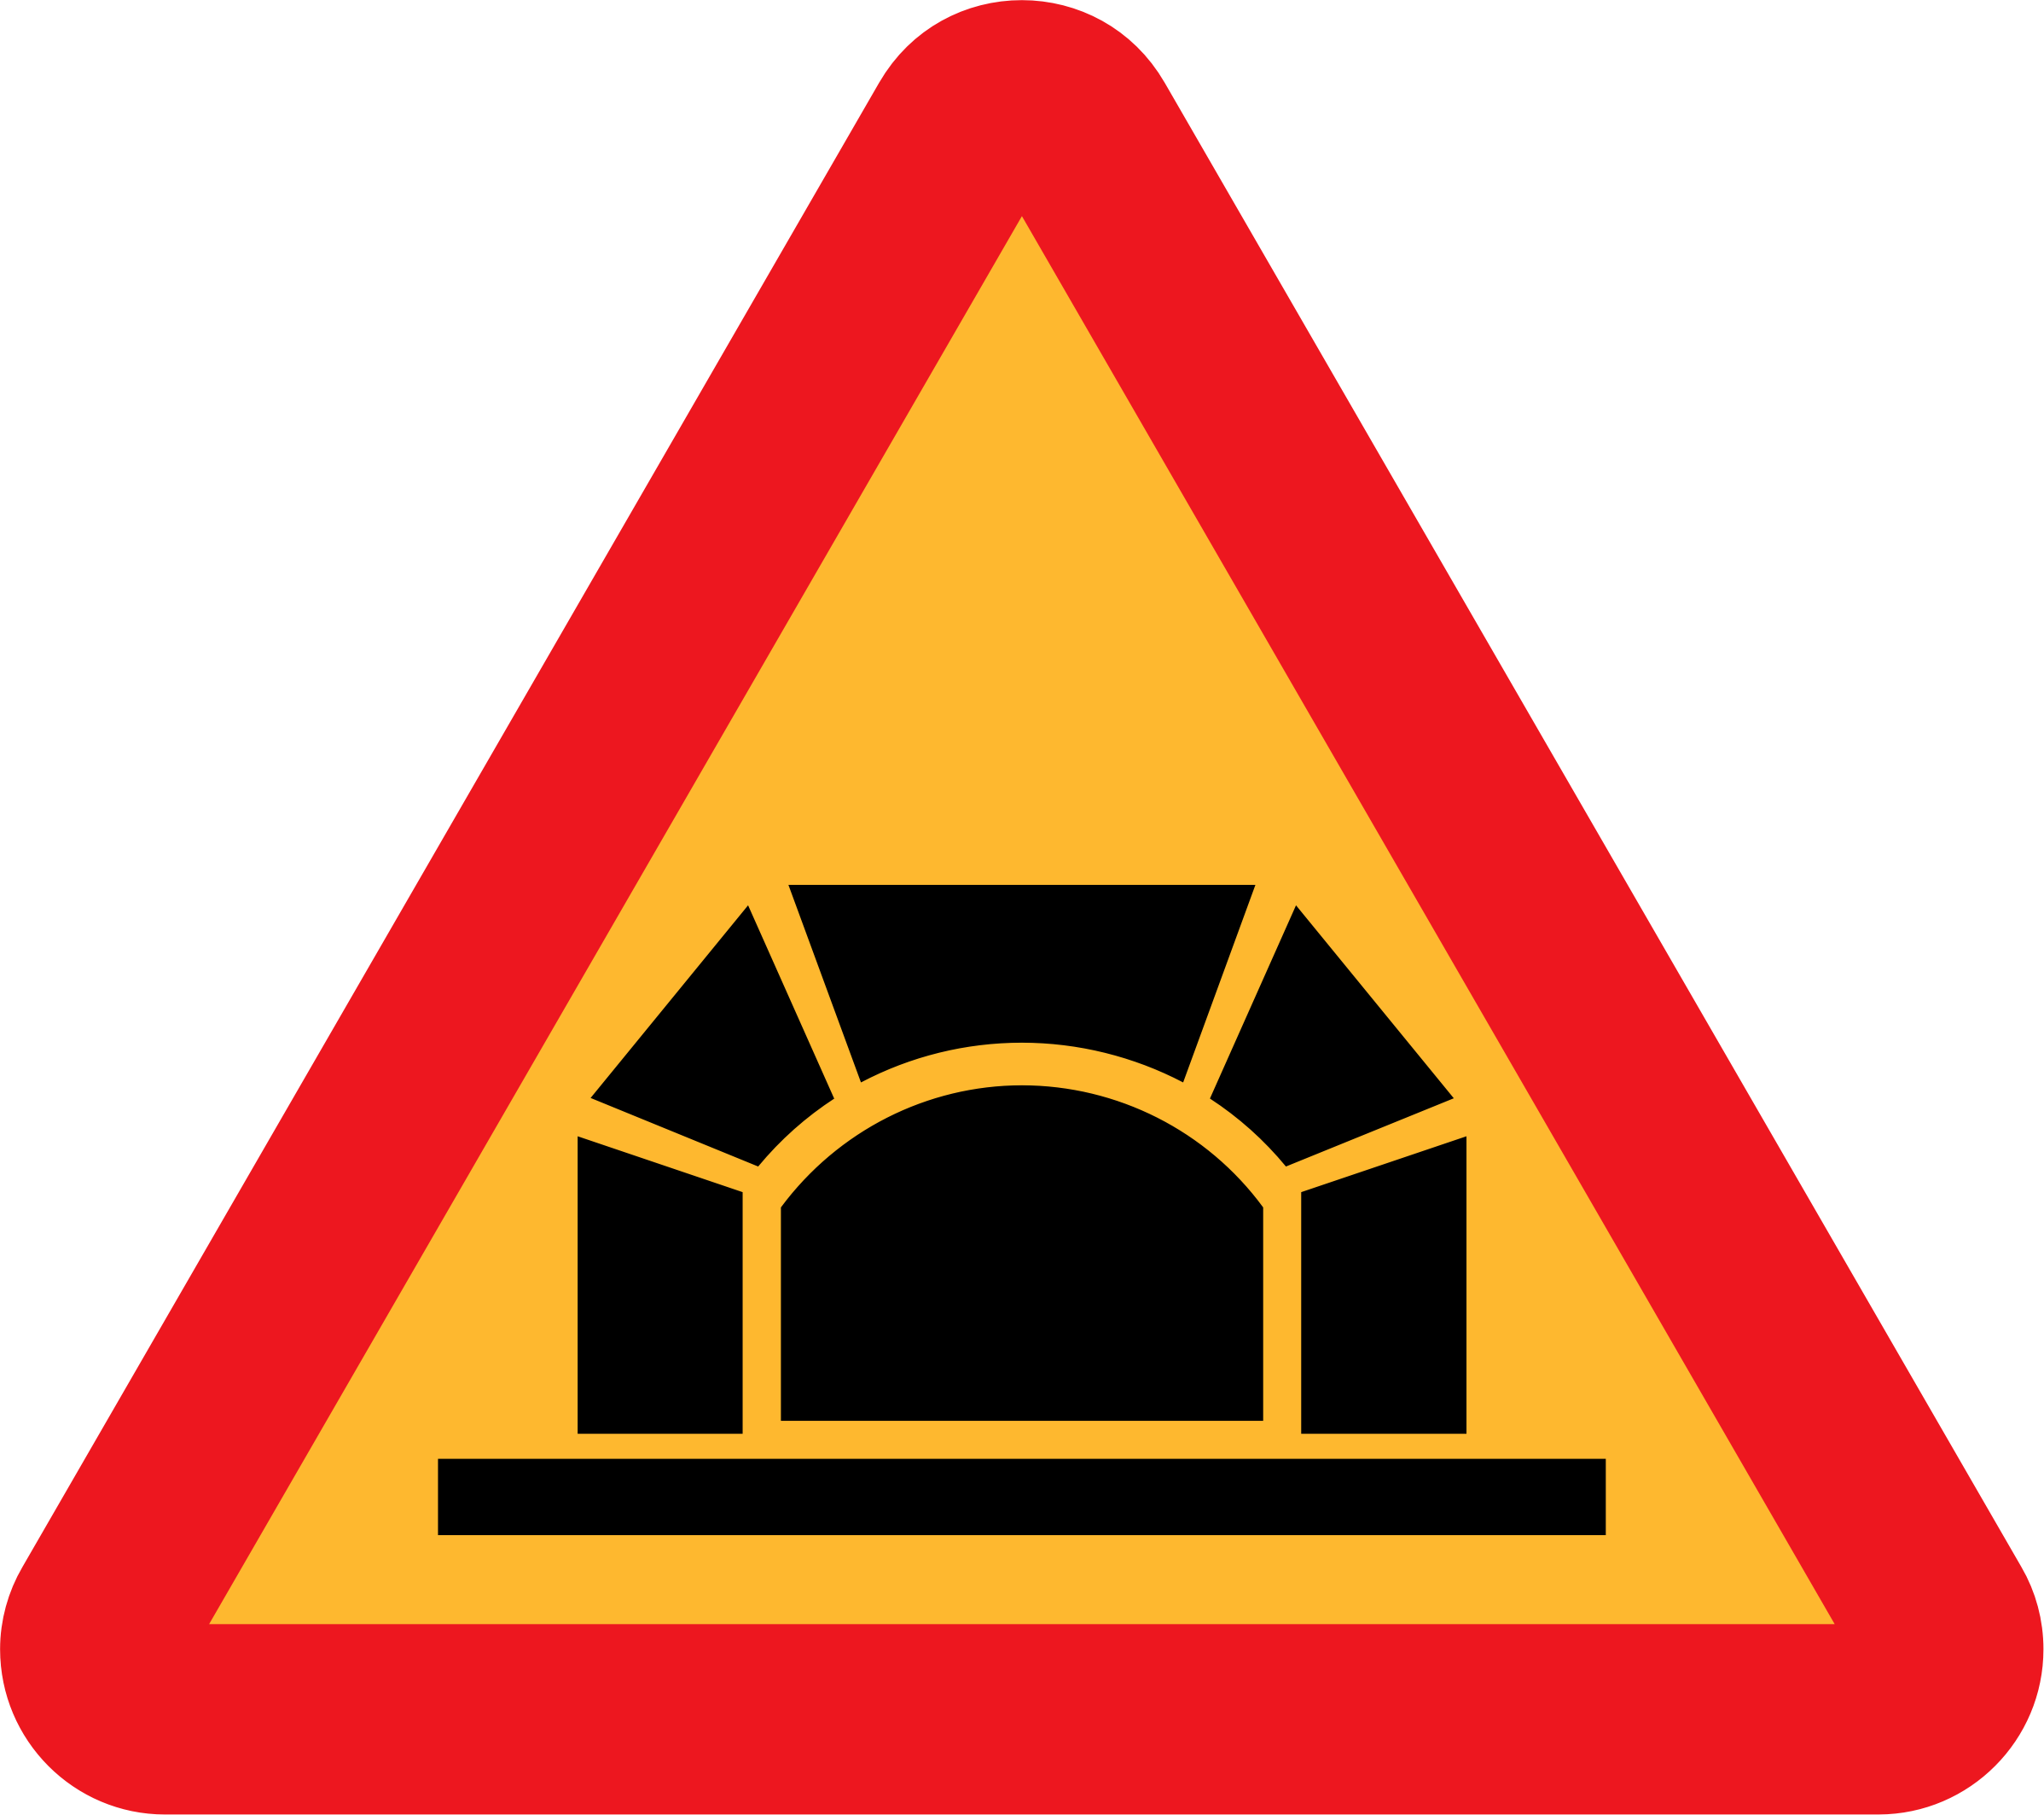 Tunnel Roadsign by ryanlerch